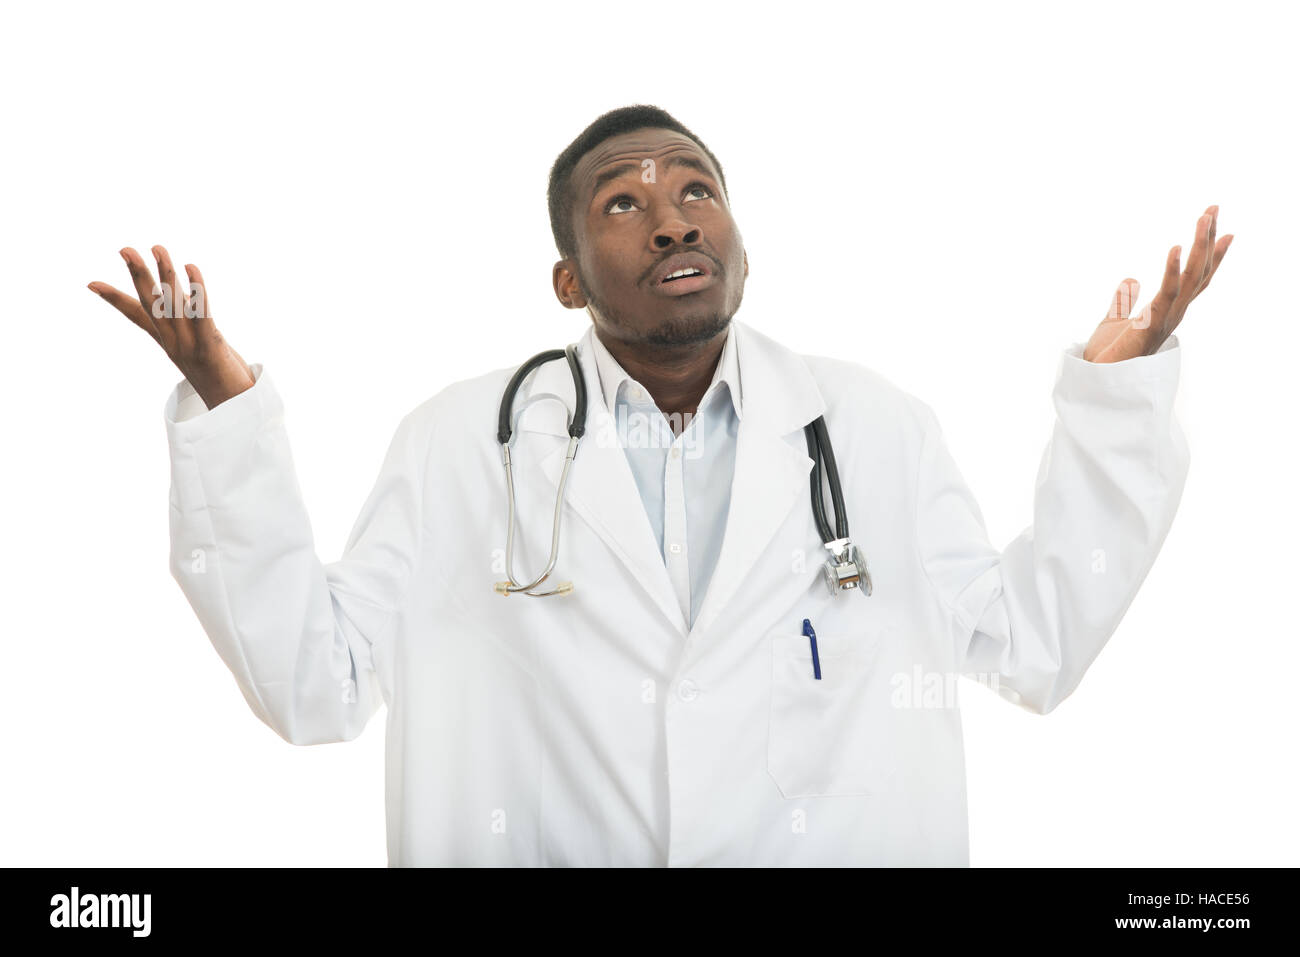 Closeup portrait of clueless black doctor health care professional, with stethoscope. - Stock Image